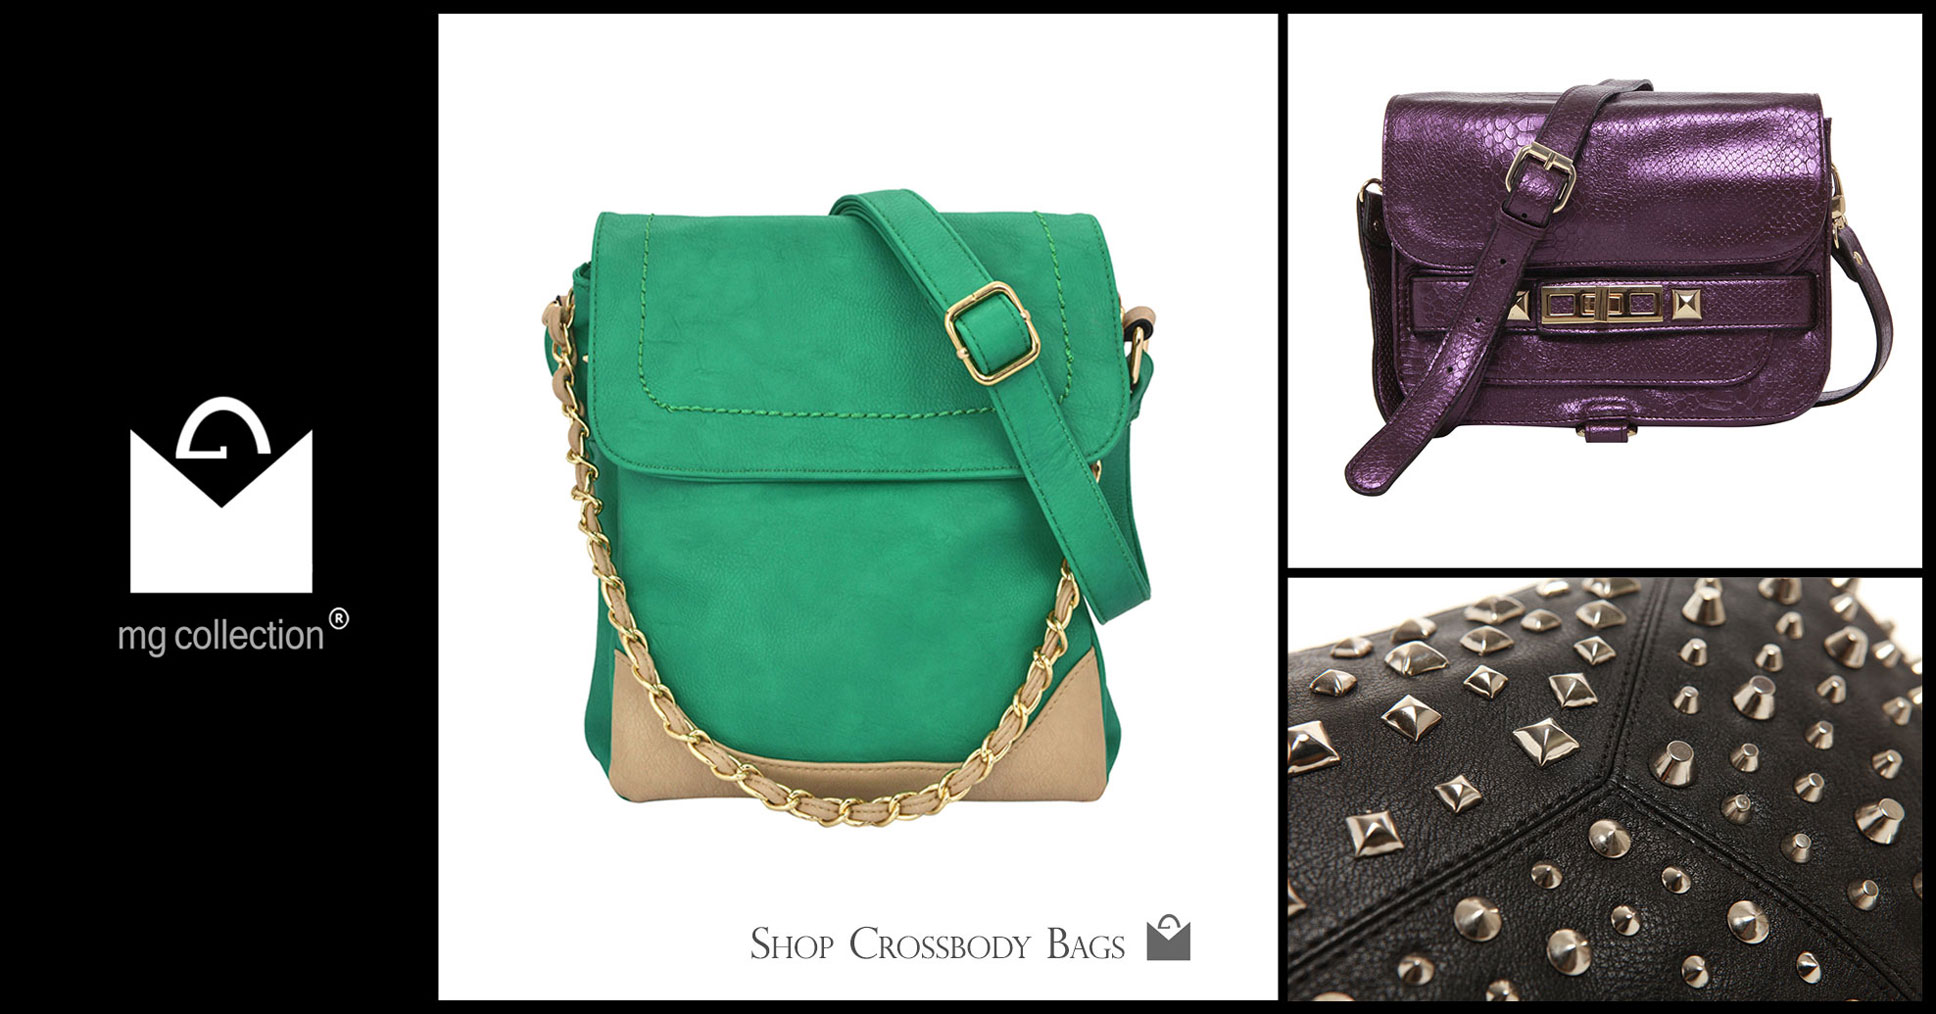 Shop Crossbody Bags @ MG Collection